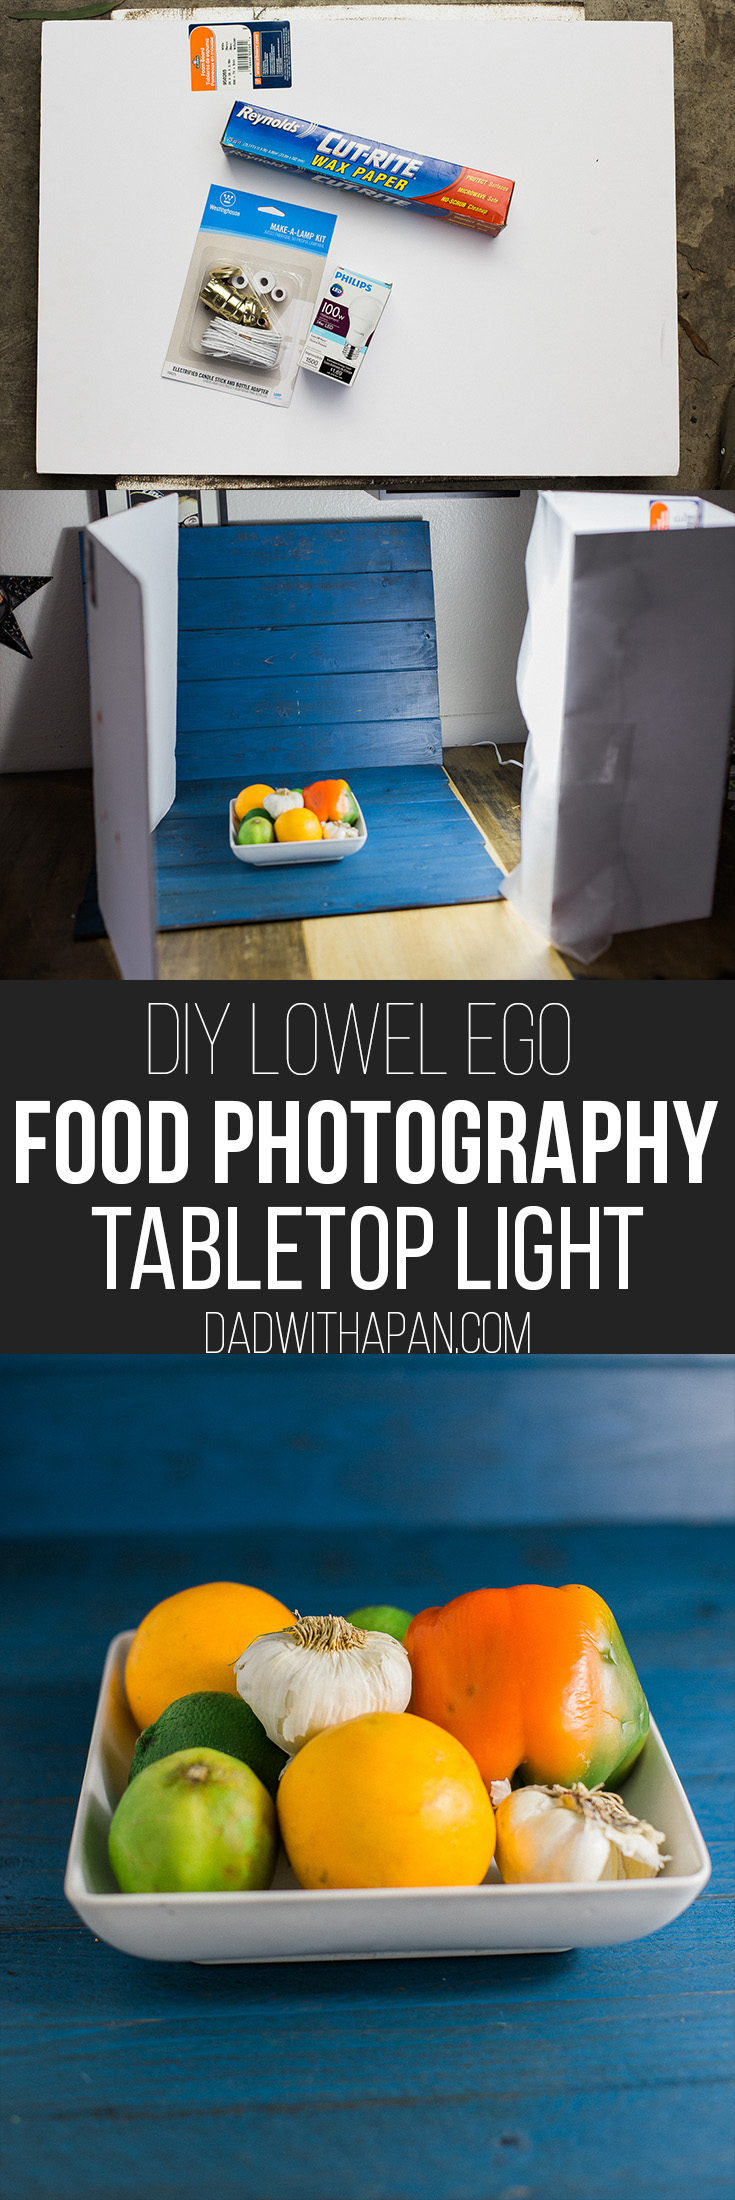 diy tabletop light for food photography dad with a pan